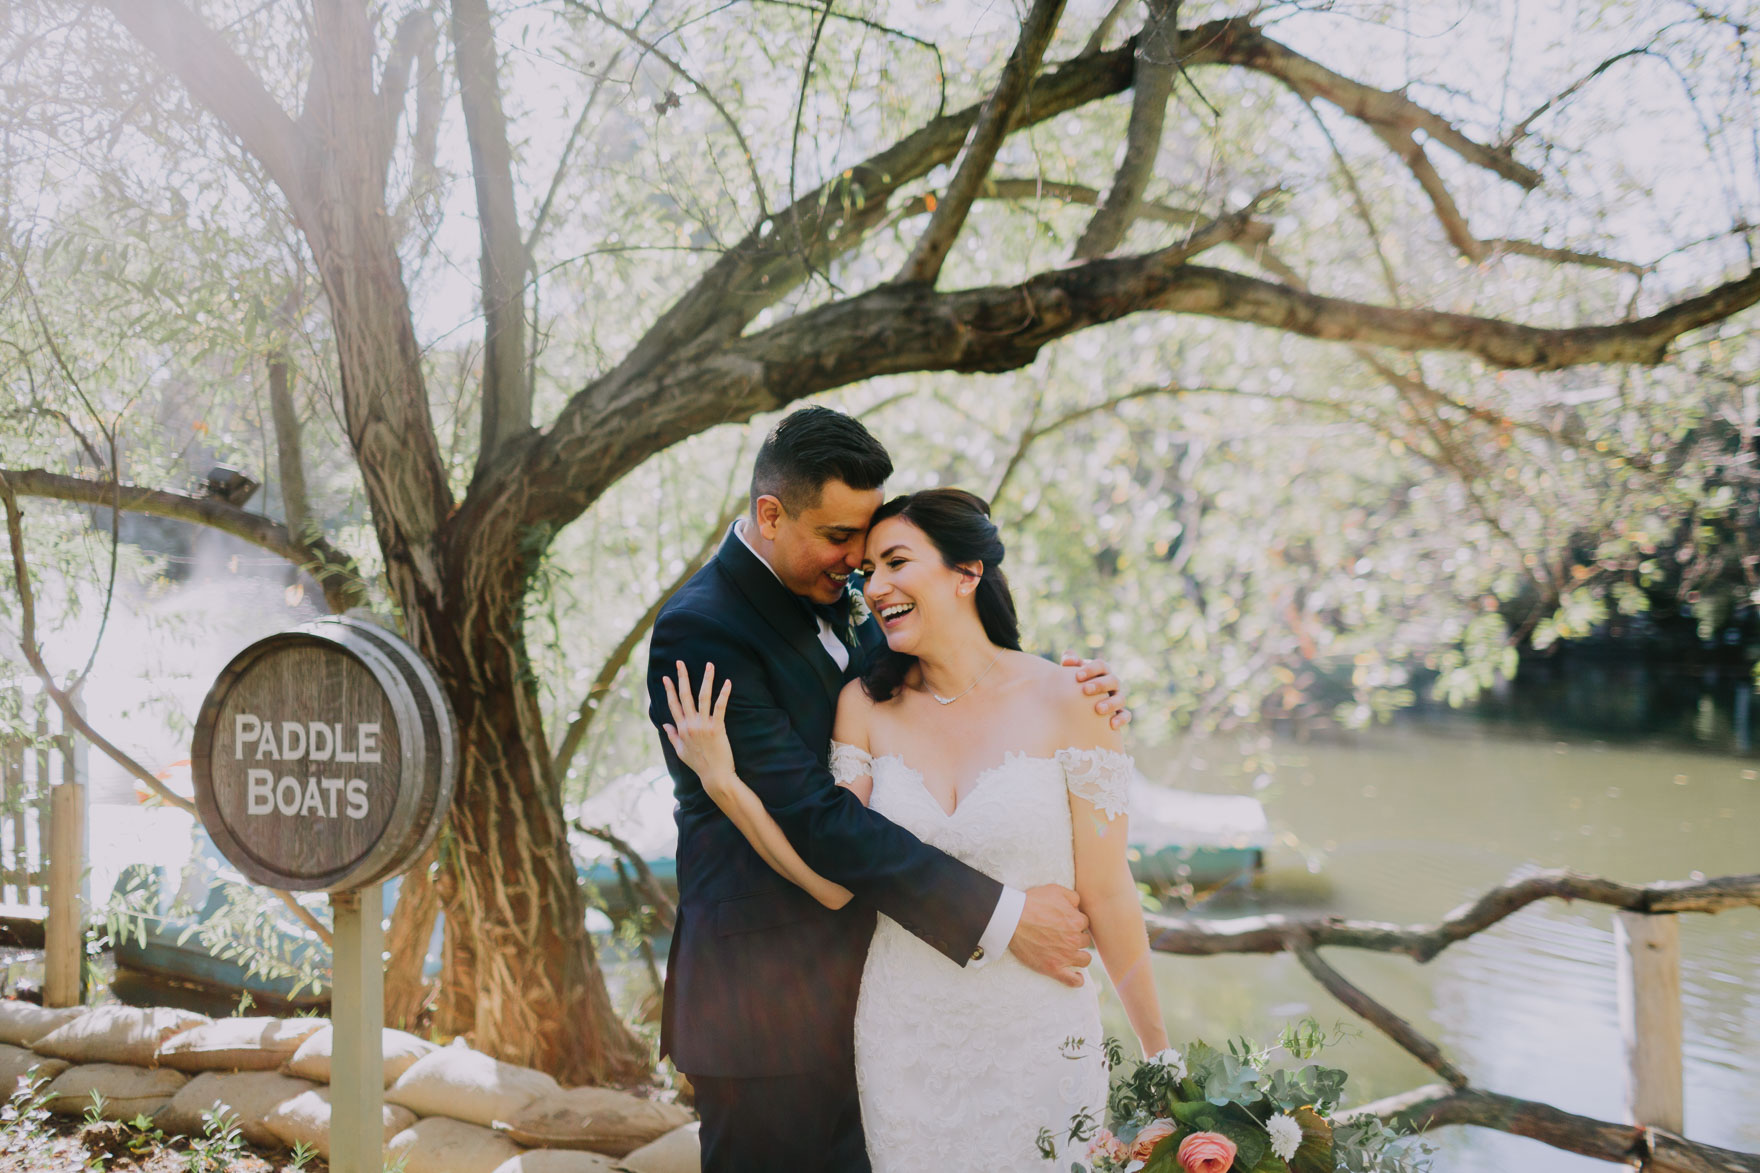 Darling Calamigos Ranch Celebration – Photo by Let's Frolic Together